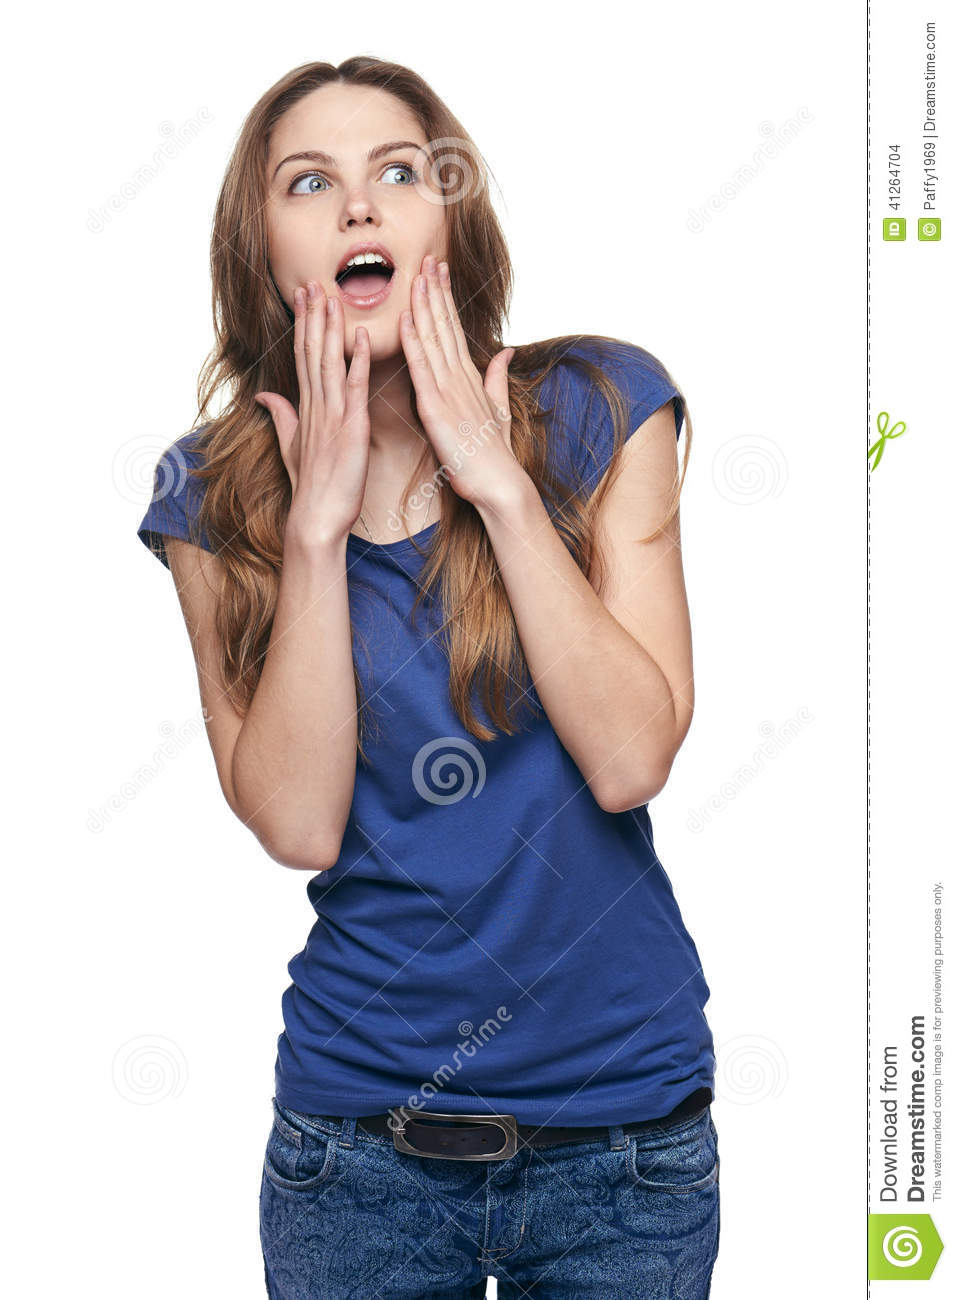 Portrait Of A Young Woman Looking Surprised High-Res Stock